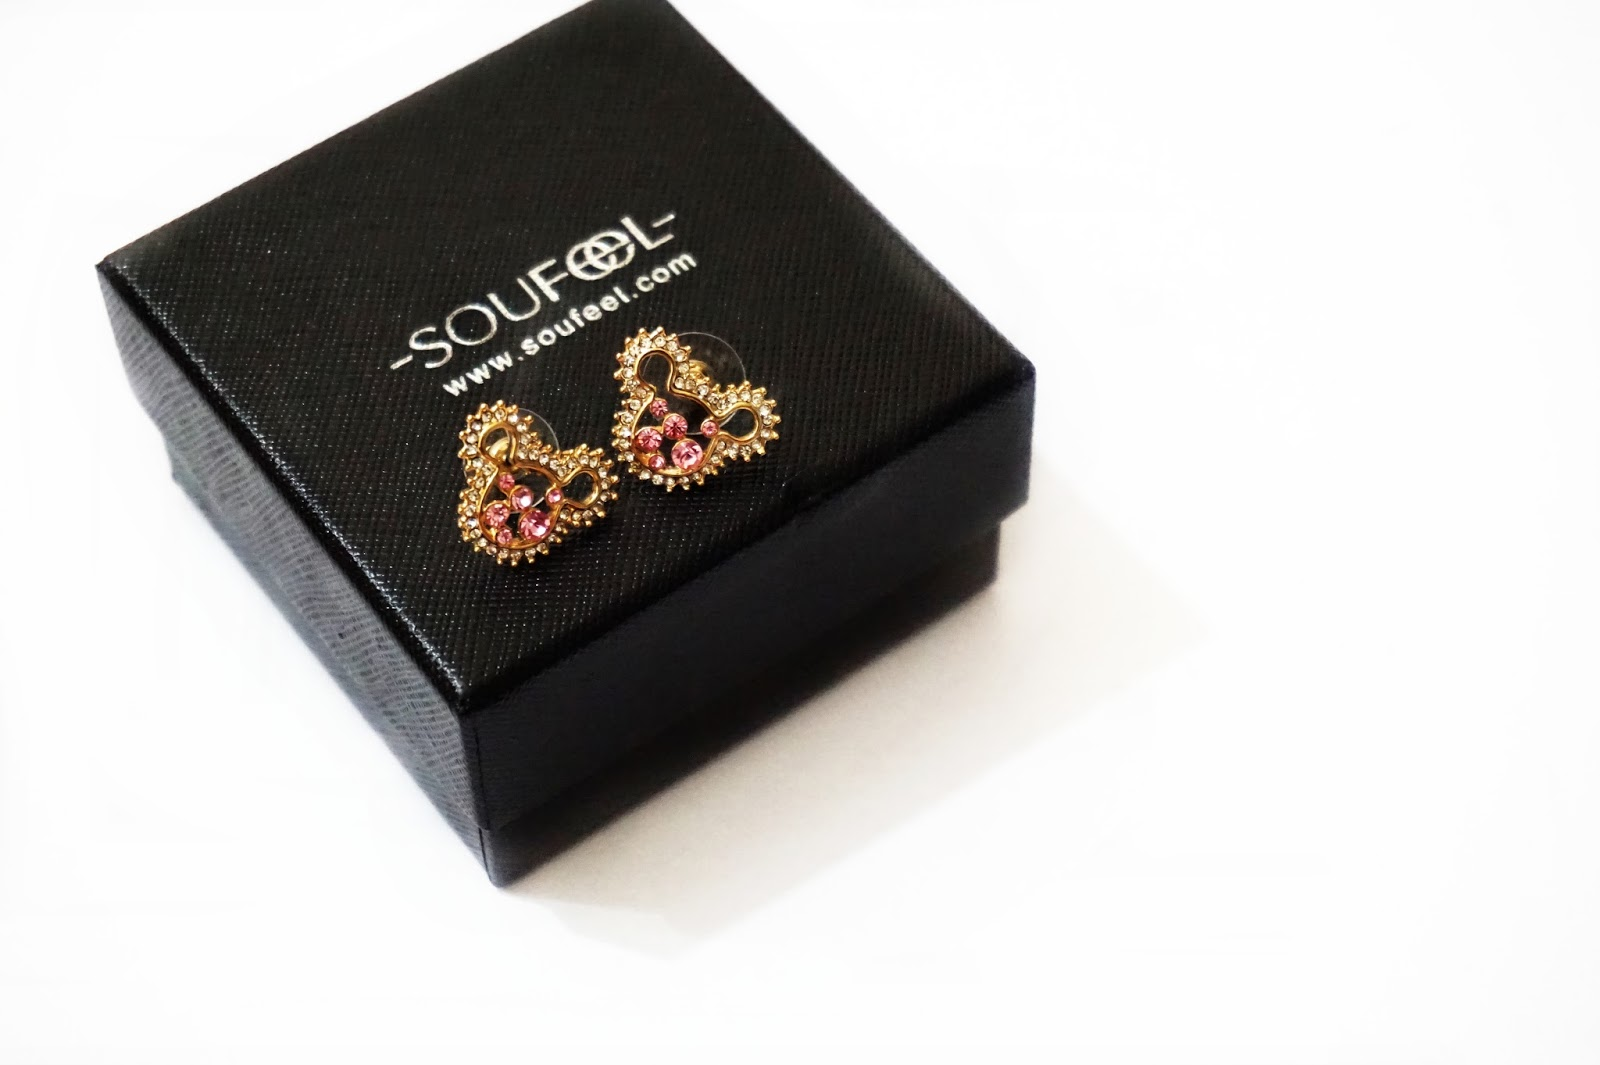 cubic zirconia soufeel earrings review